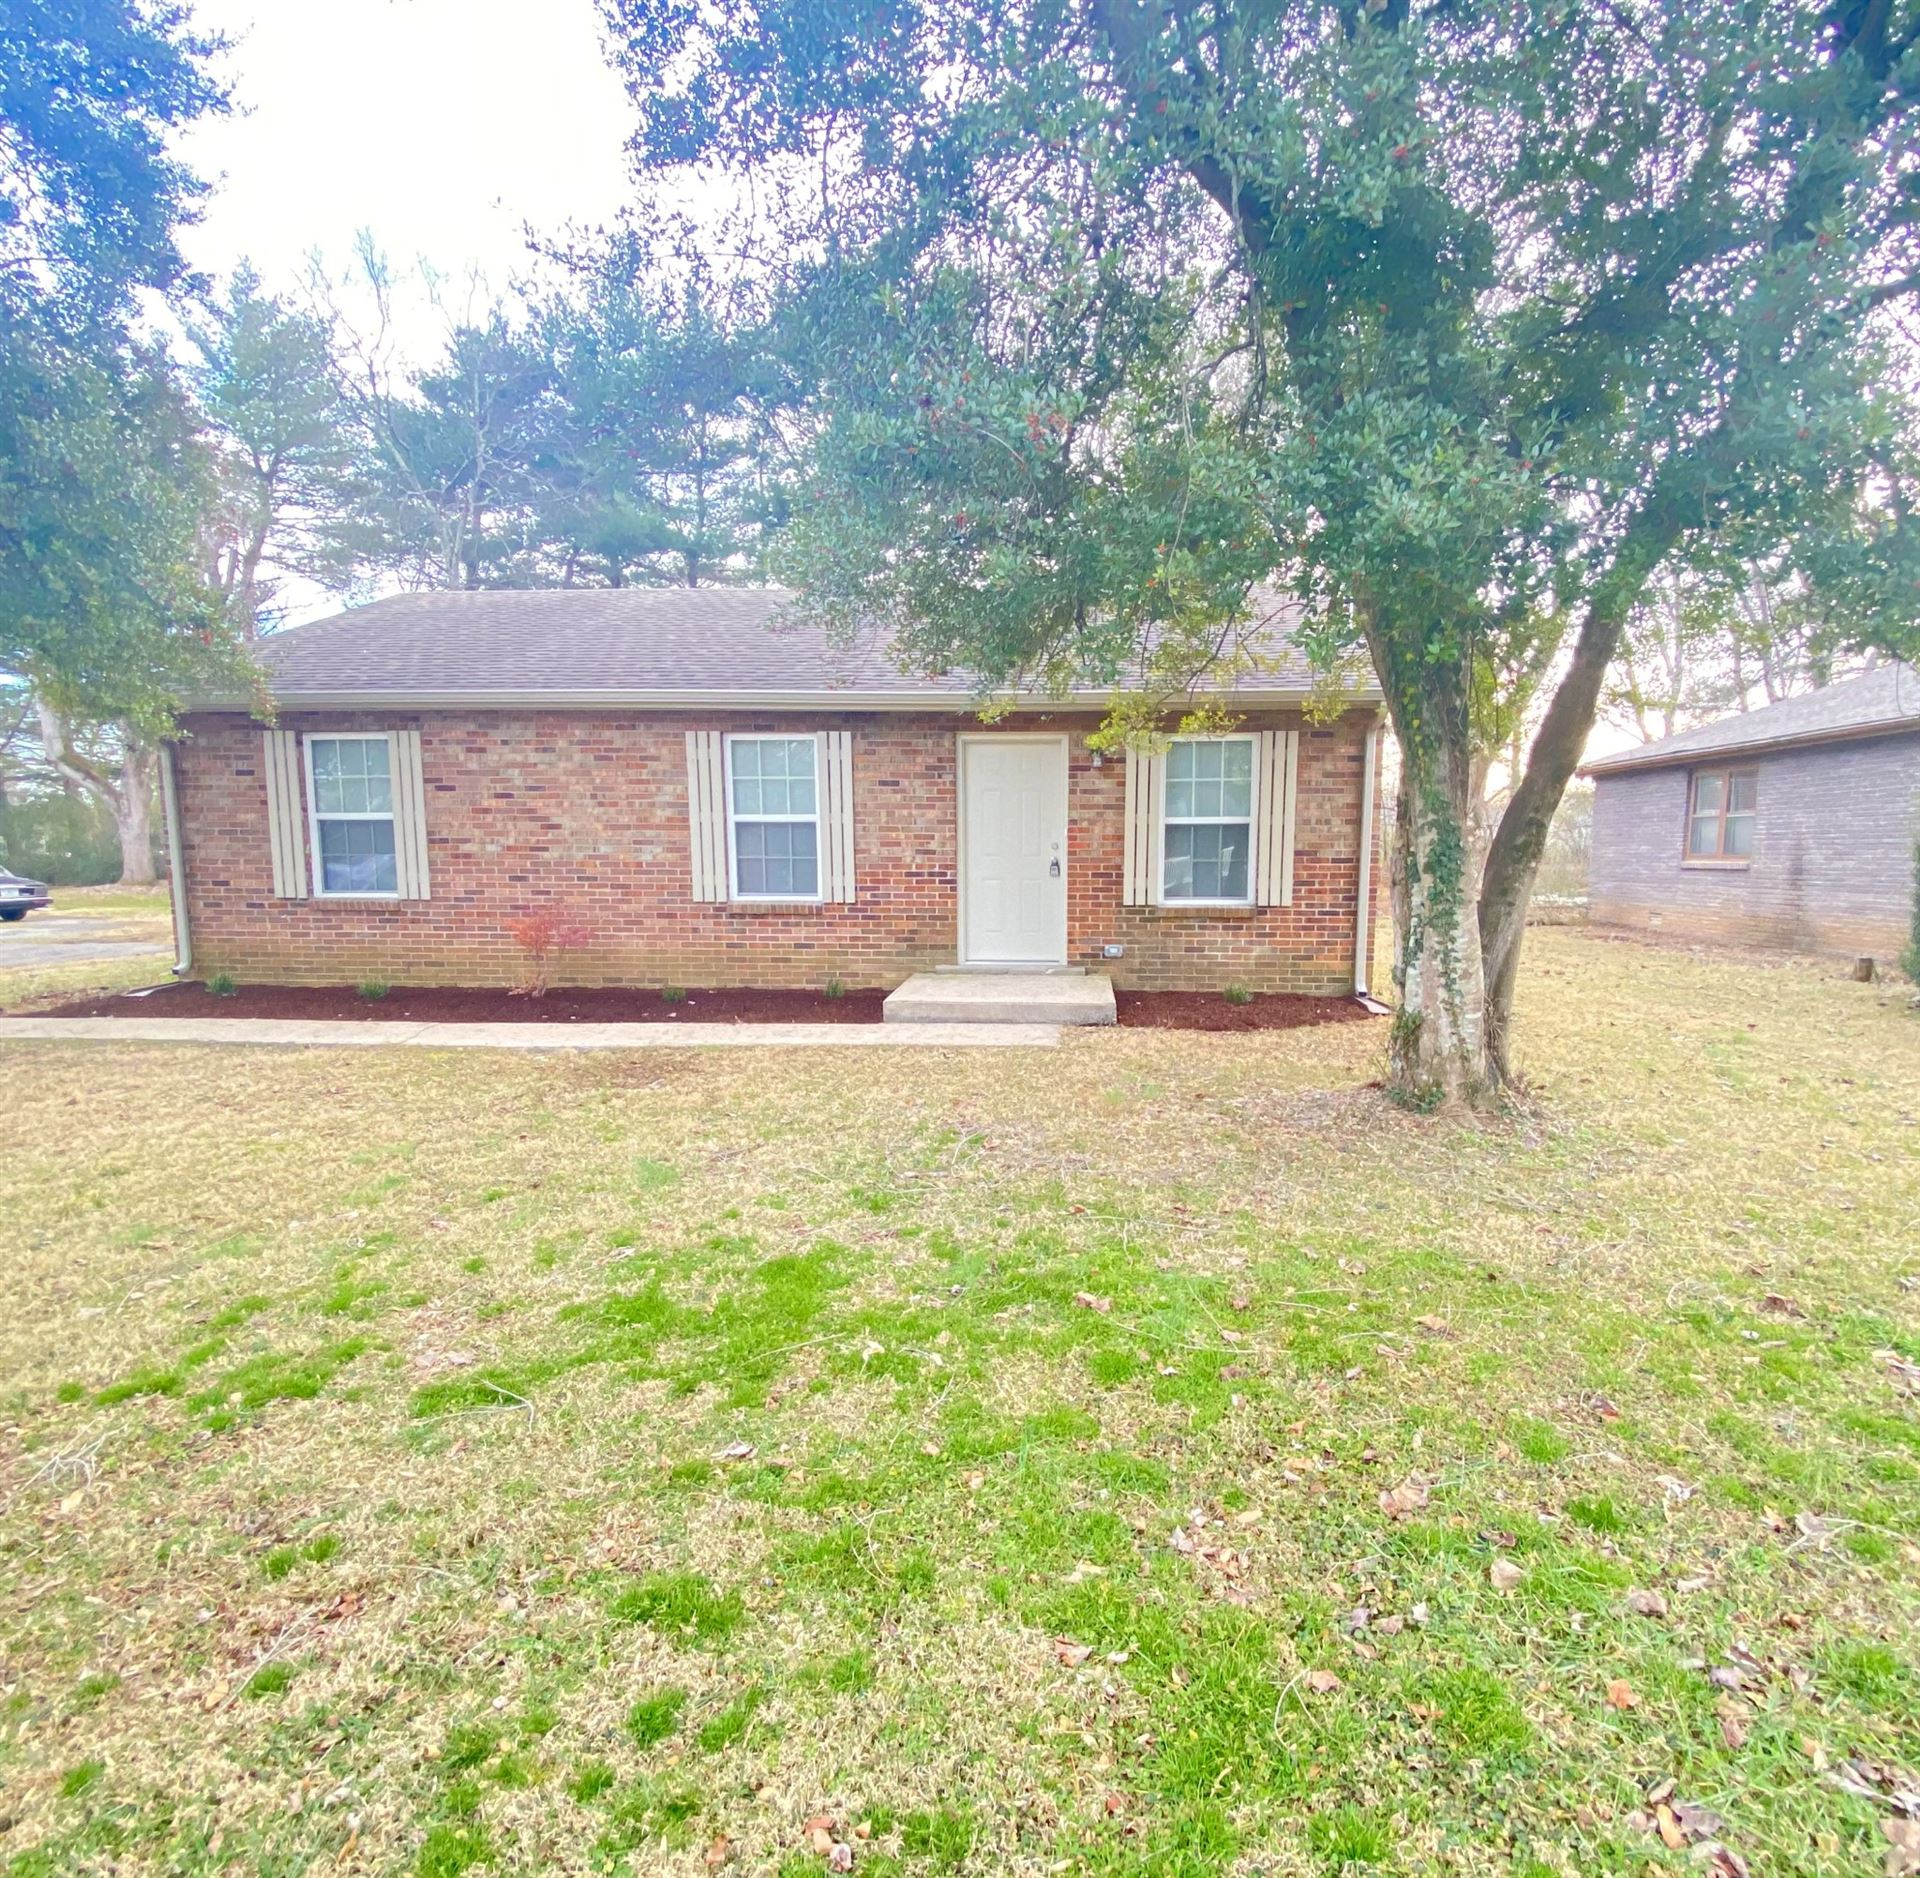 710 Johnson St, Murfreesboro, TN 37130 - MLS#: 2220401